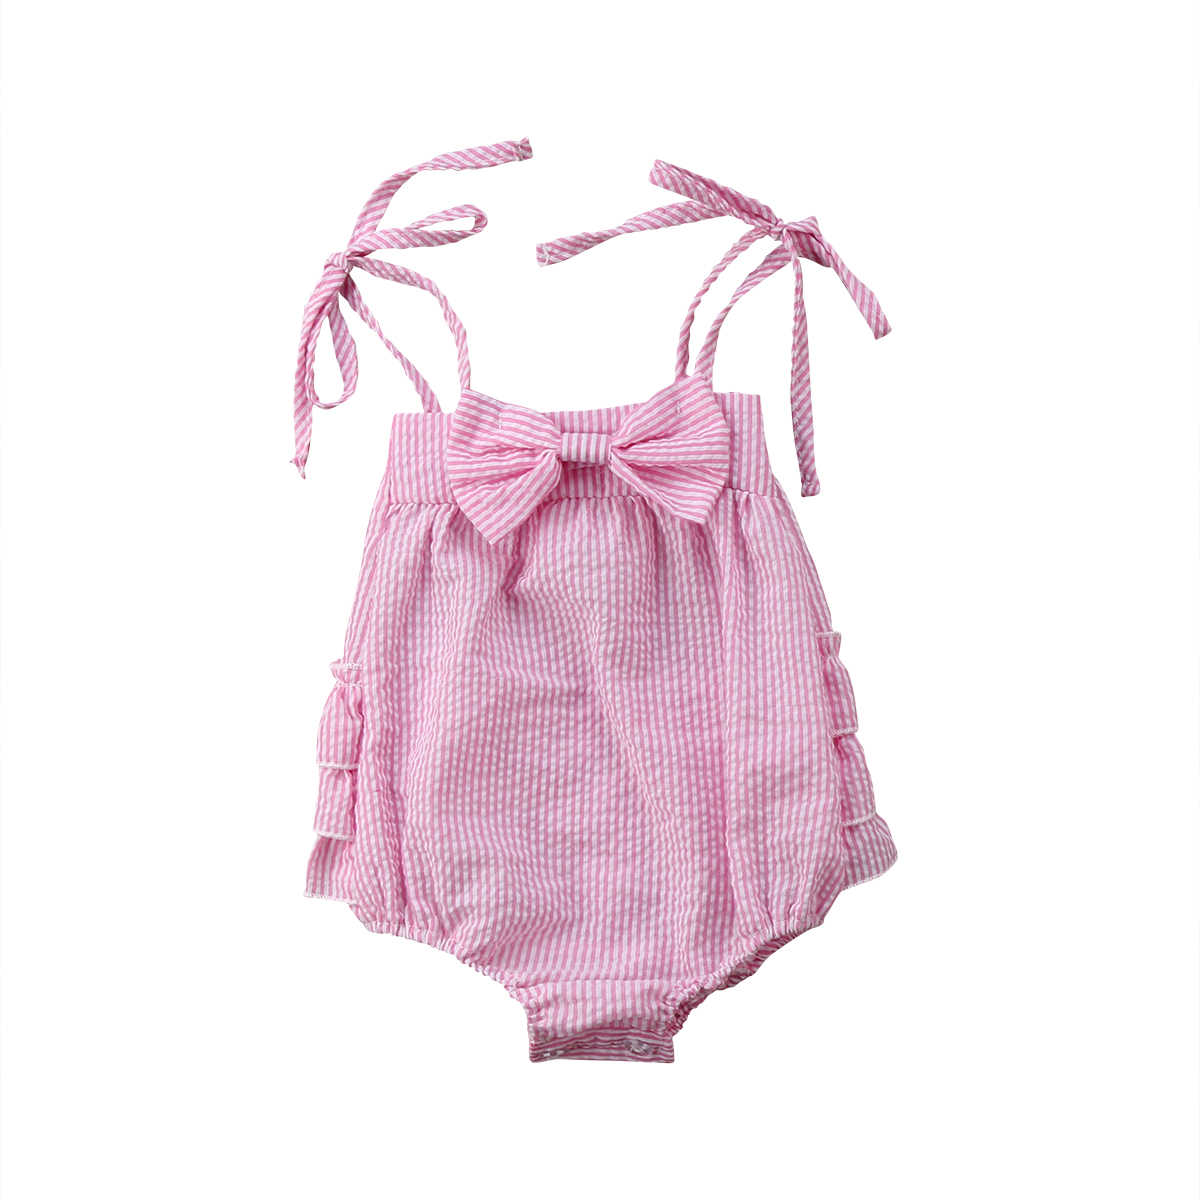 f8004c9b228e7 Detail Feedback Questions about Newborn Kids Baby Girl Infant bow ...